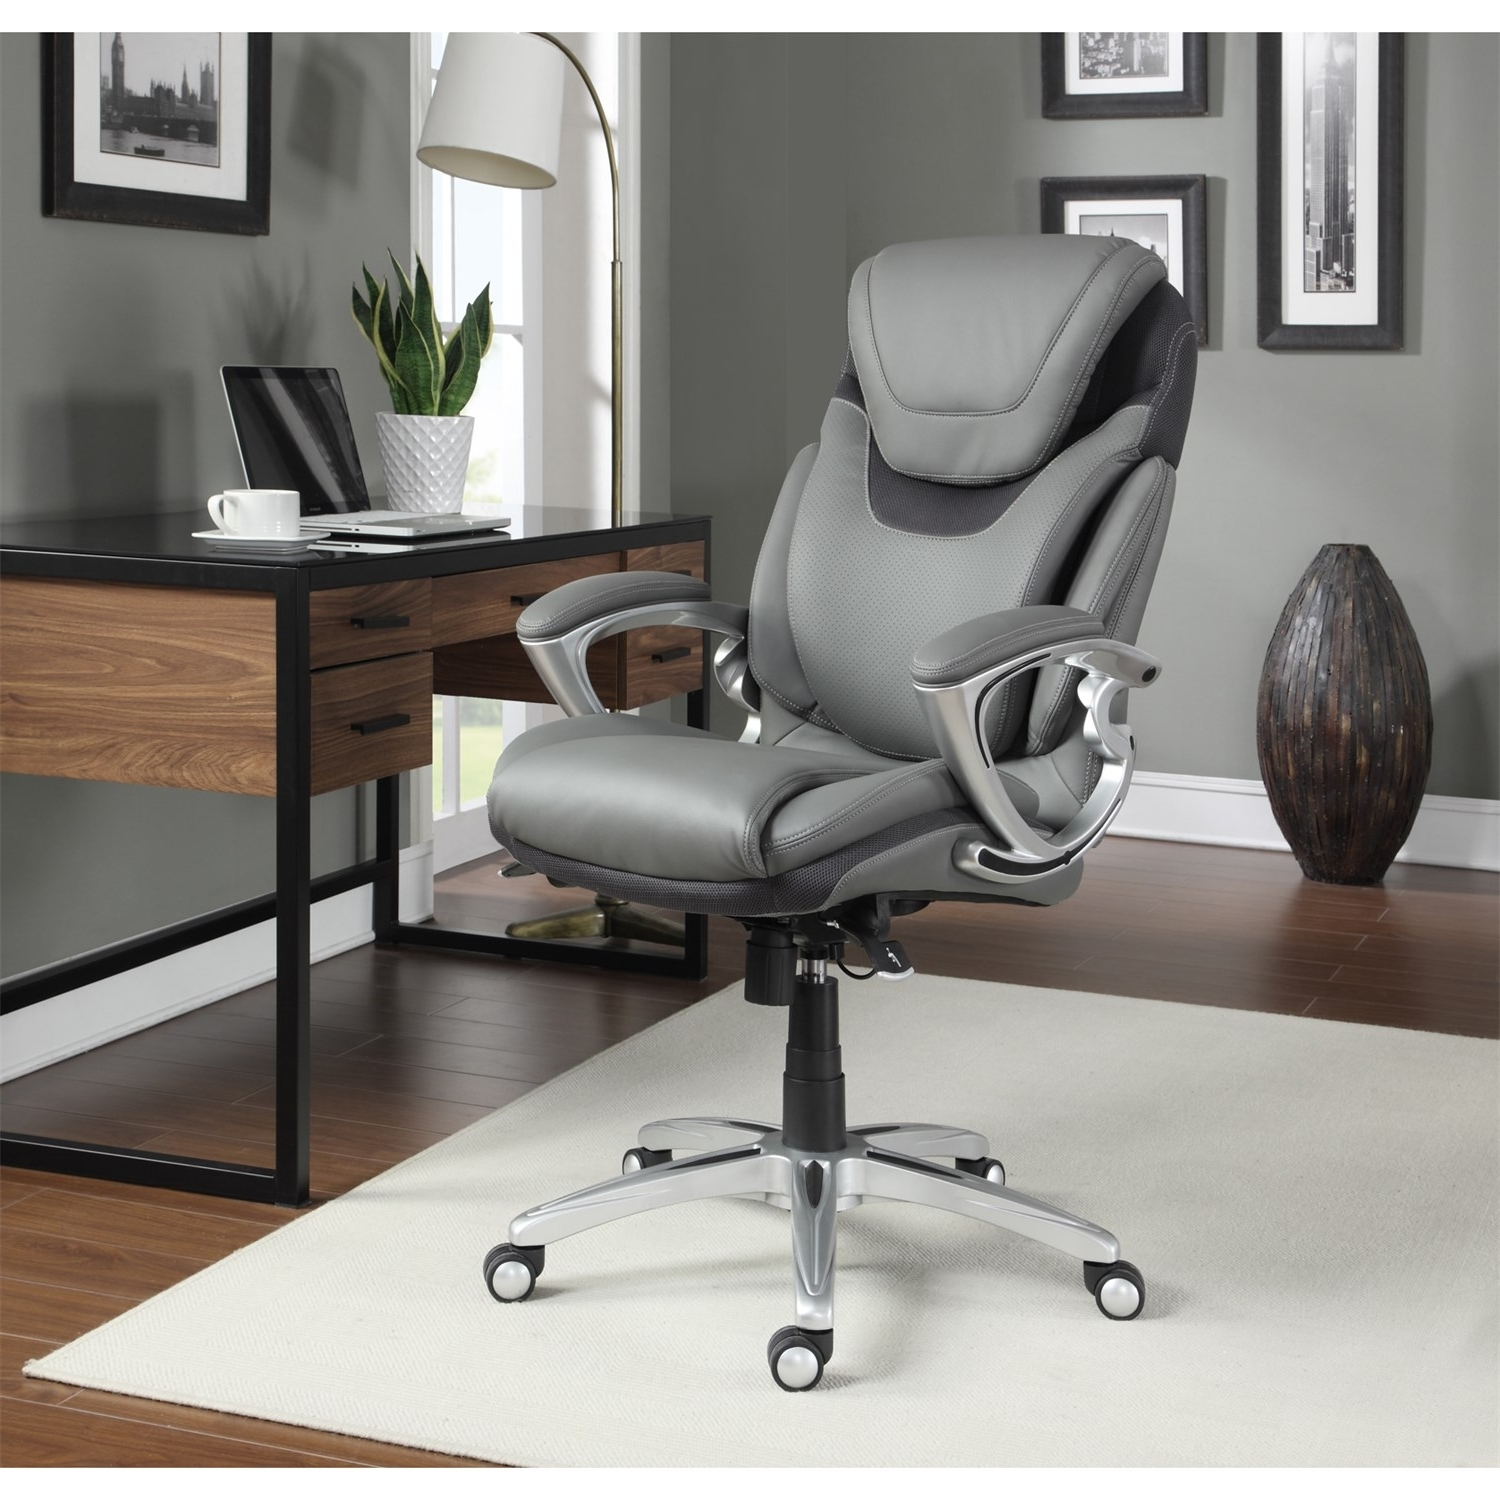 Serta At Home 43807 Air Health And Wellness Executive Office Chair For Famous Executive Office Chairs (View 20 of 20)